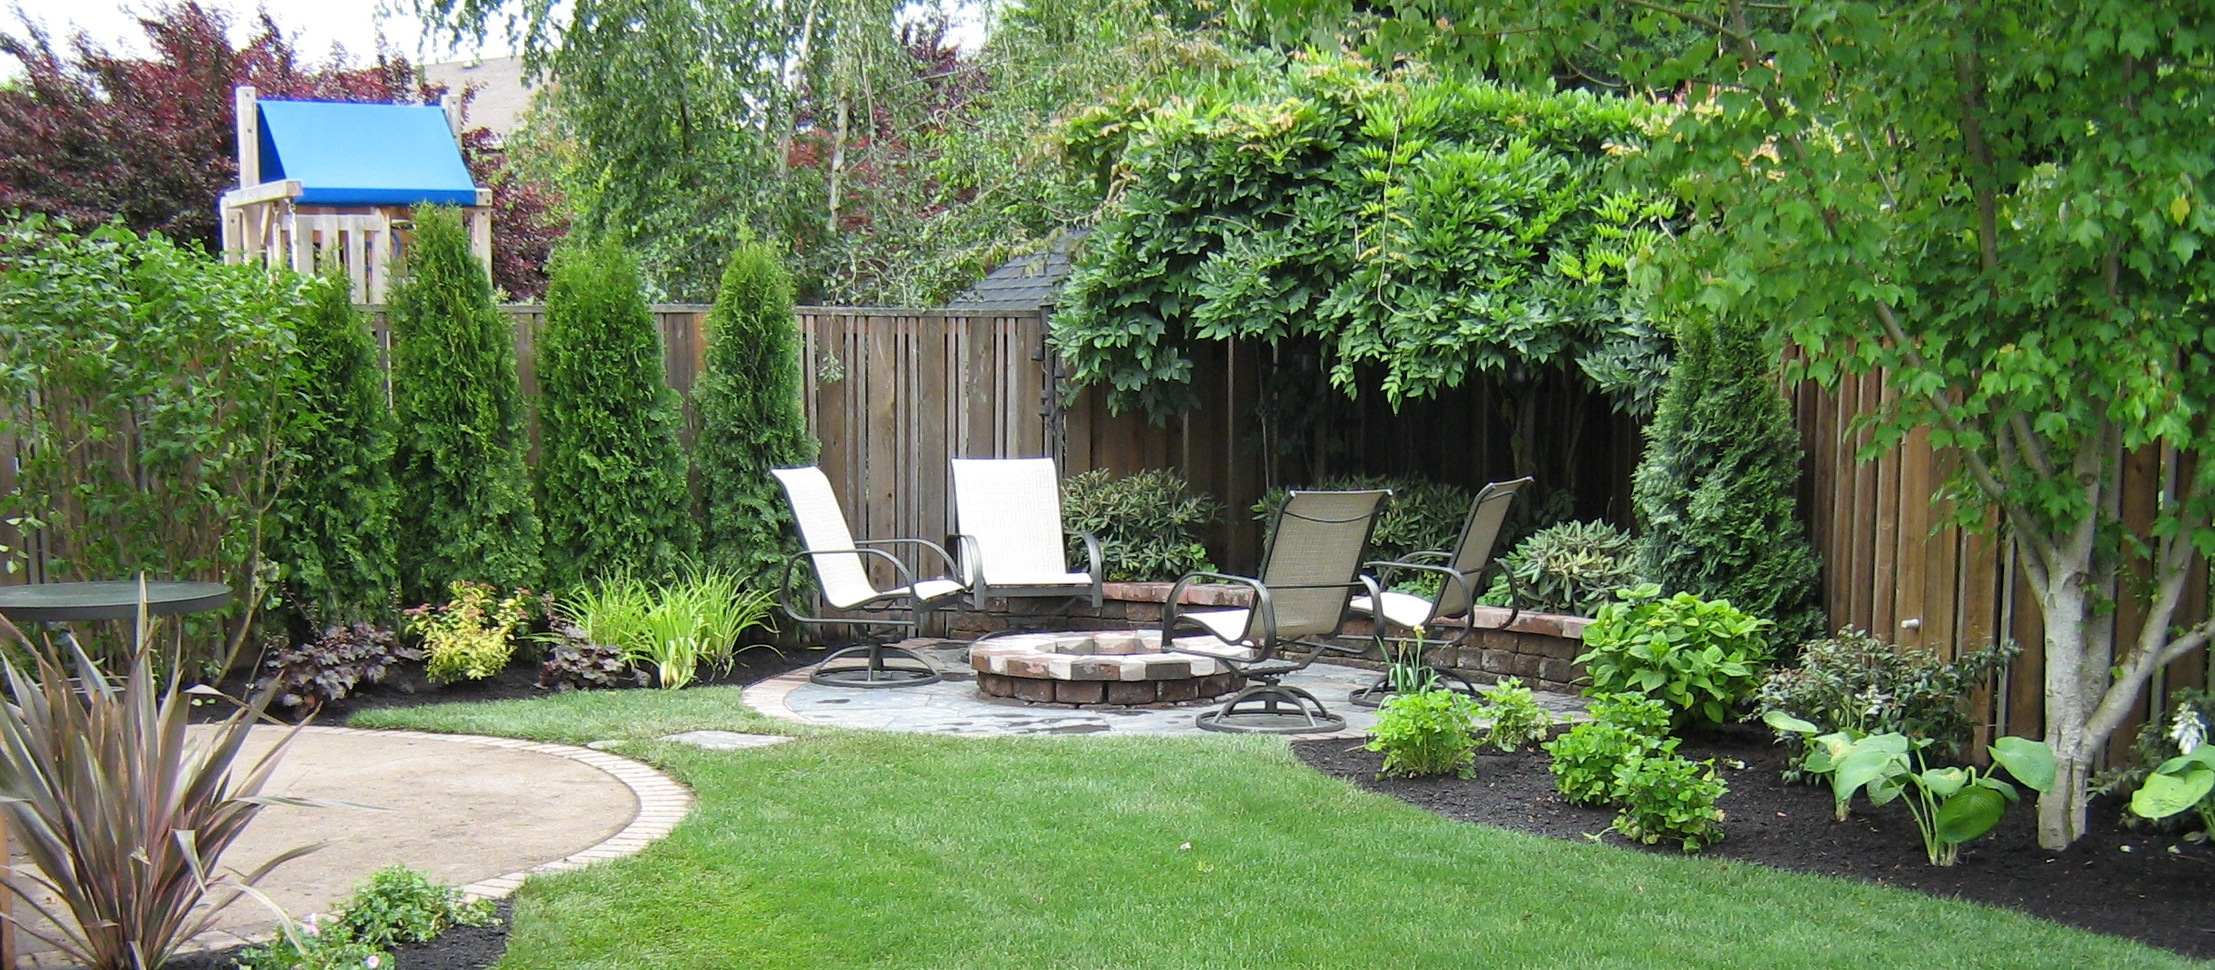 backyard pool landscaping ideas photo - 1